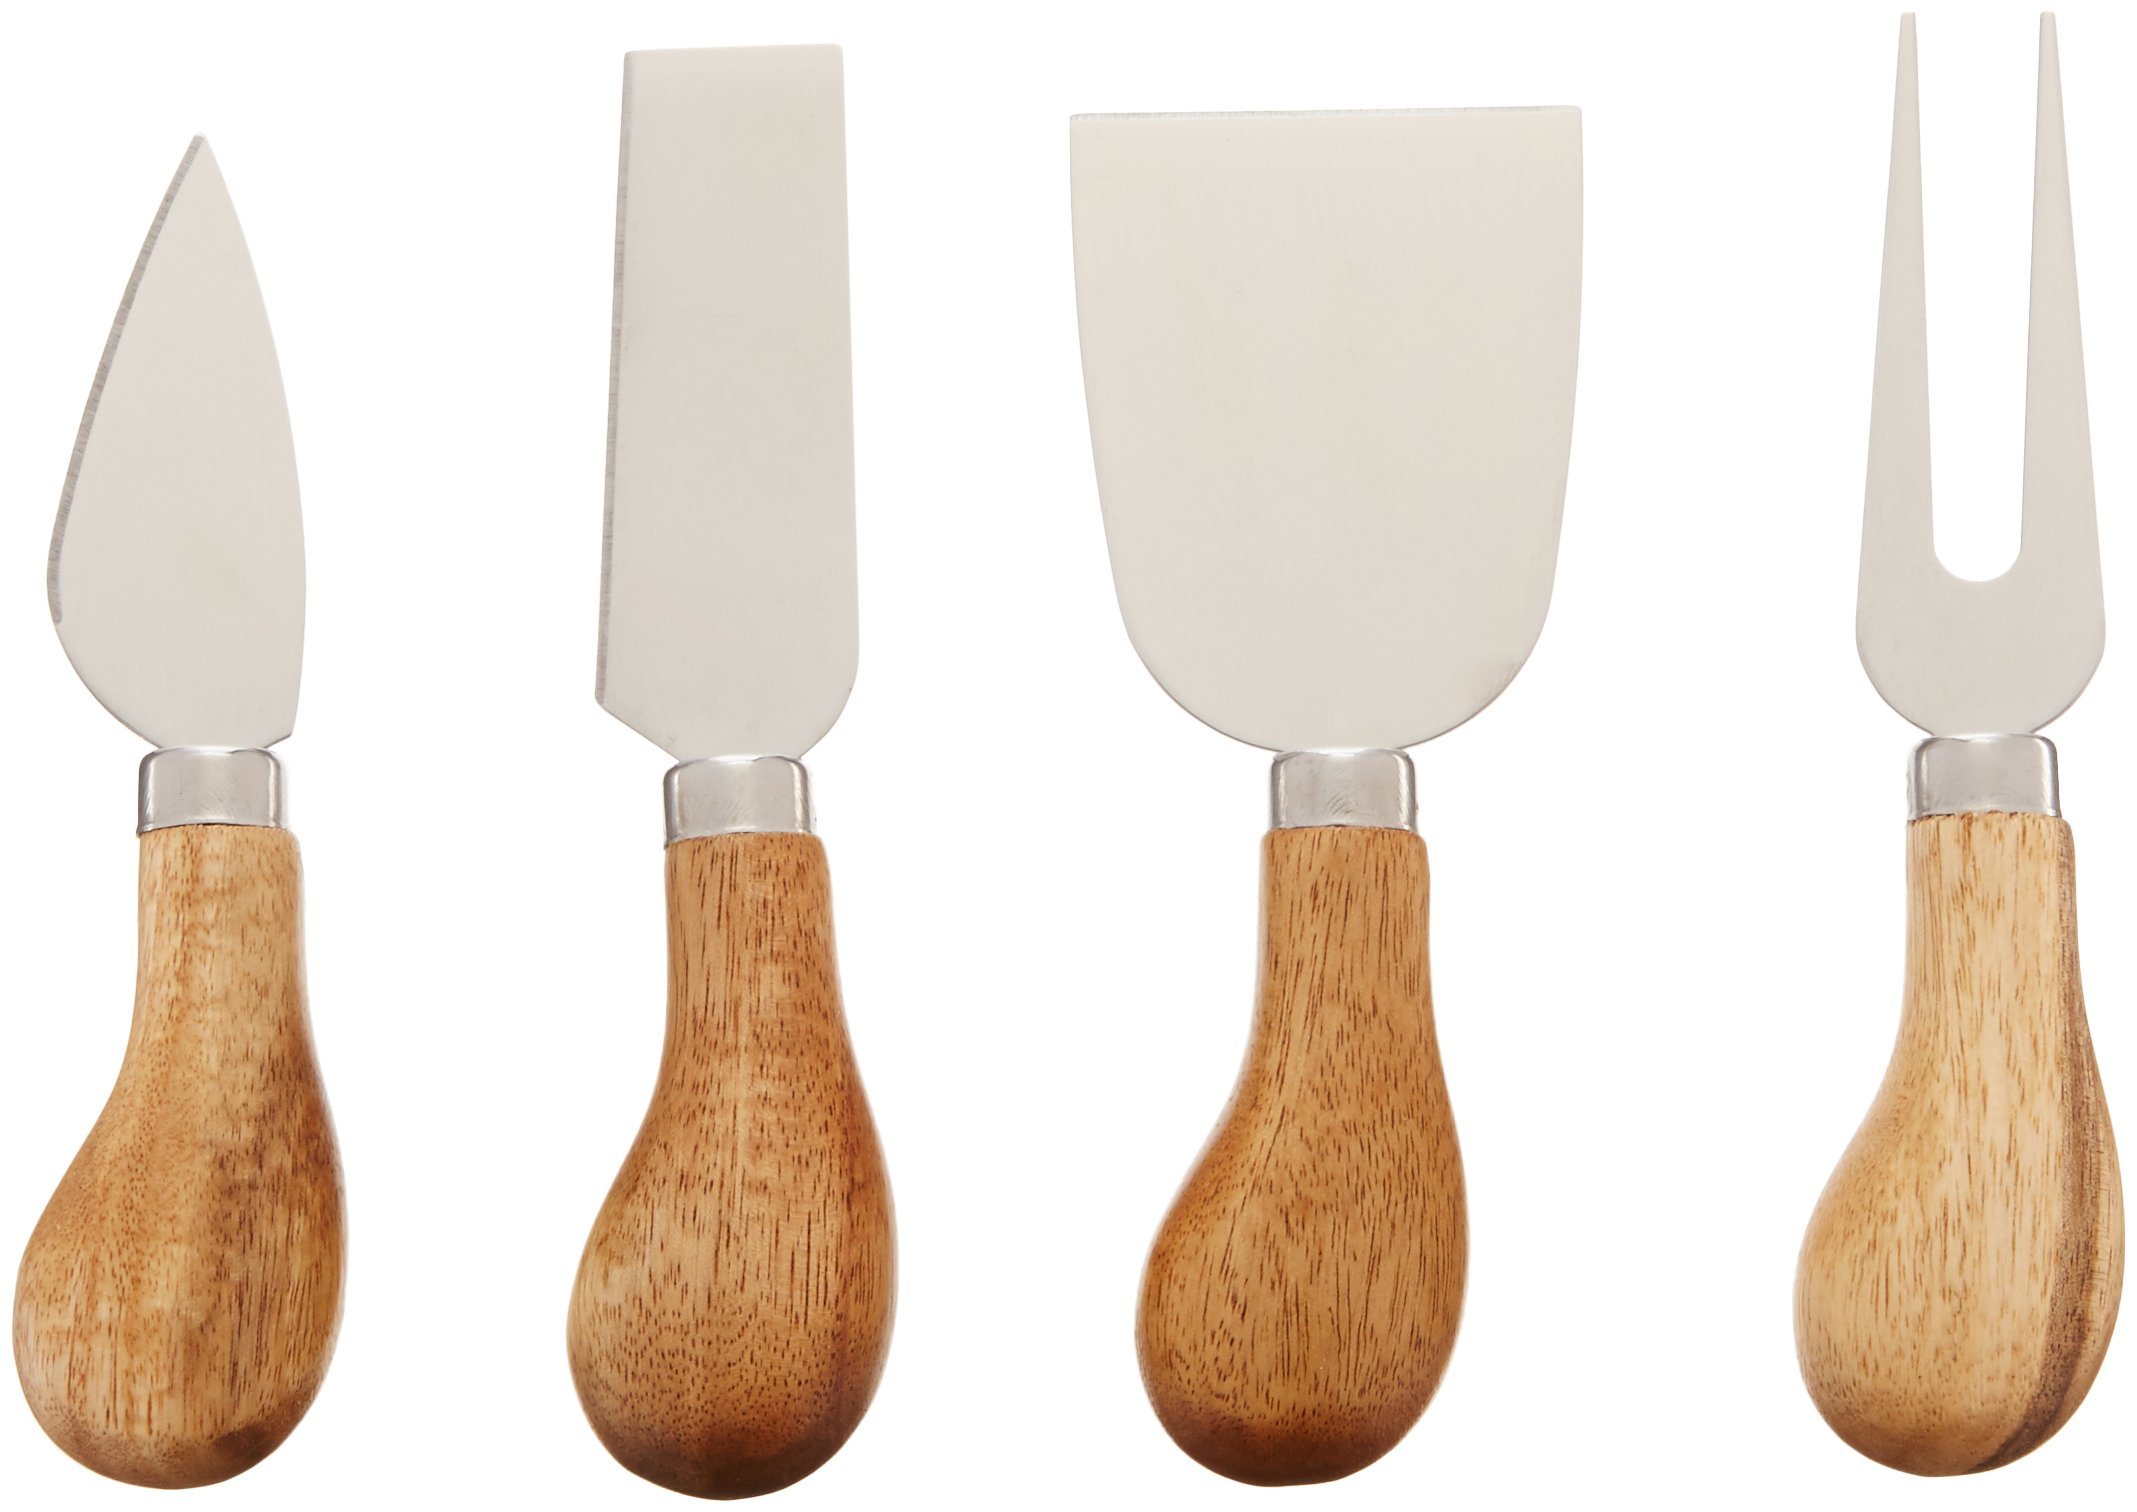 Rustic Farmhouse Gourmet Cheese Knives and Serving Tools by Twine - (4 Cheese Tools) by Twine